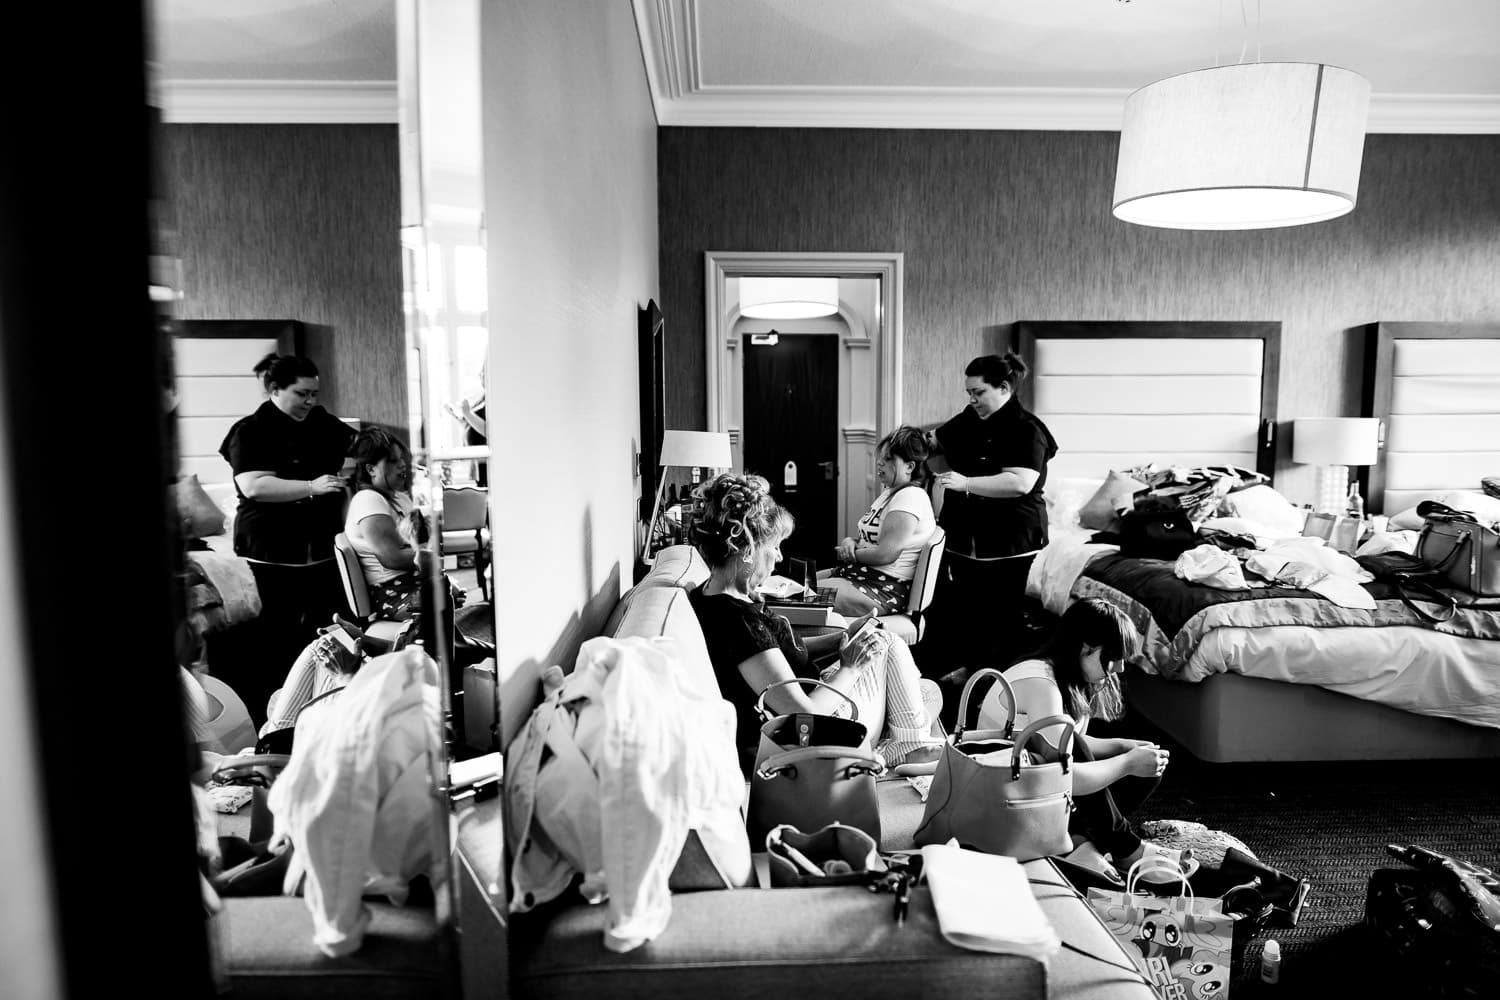 Warwickshire Wedding Photographers capture bridal preparations in Chesford Grange hotel room